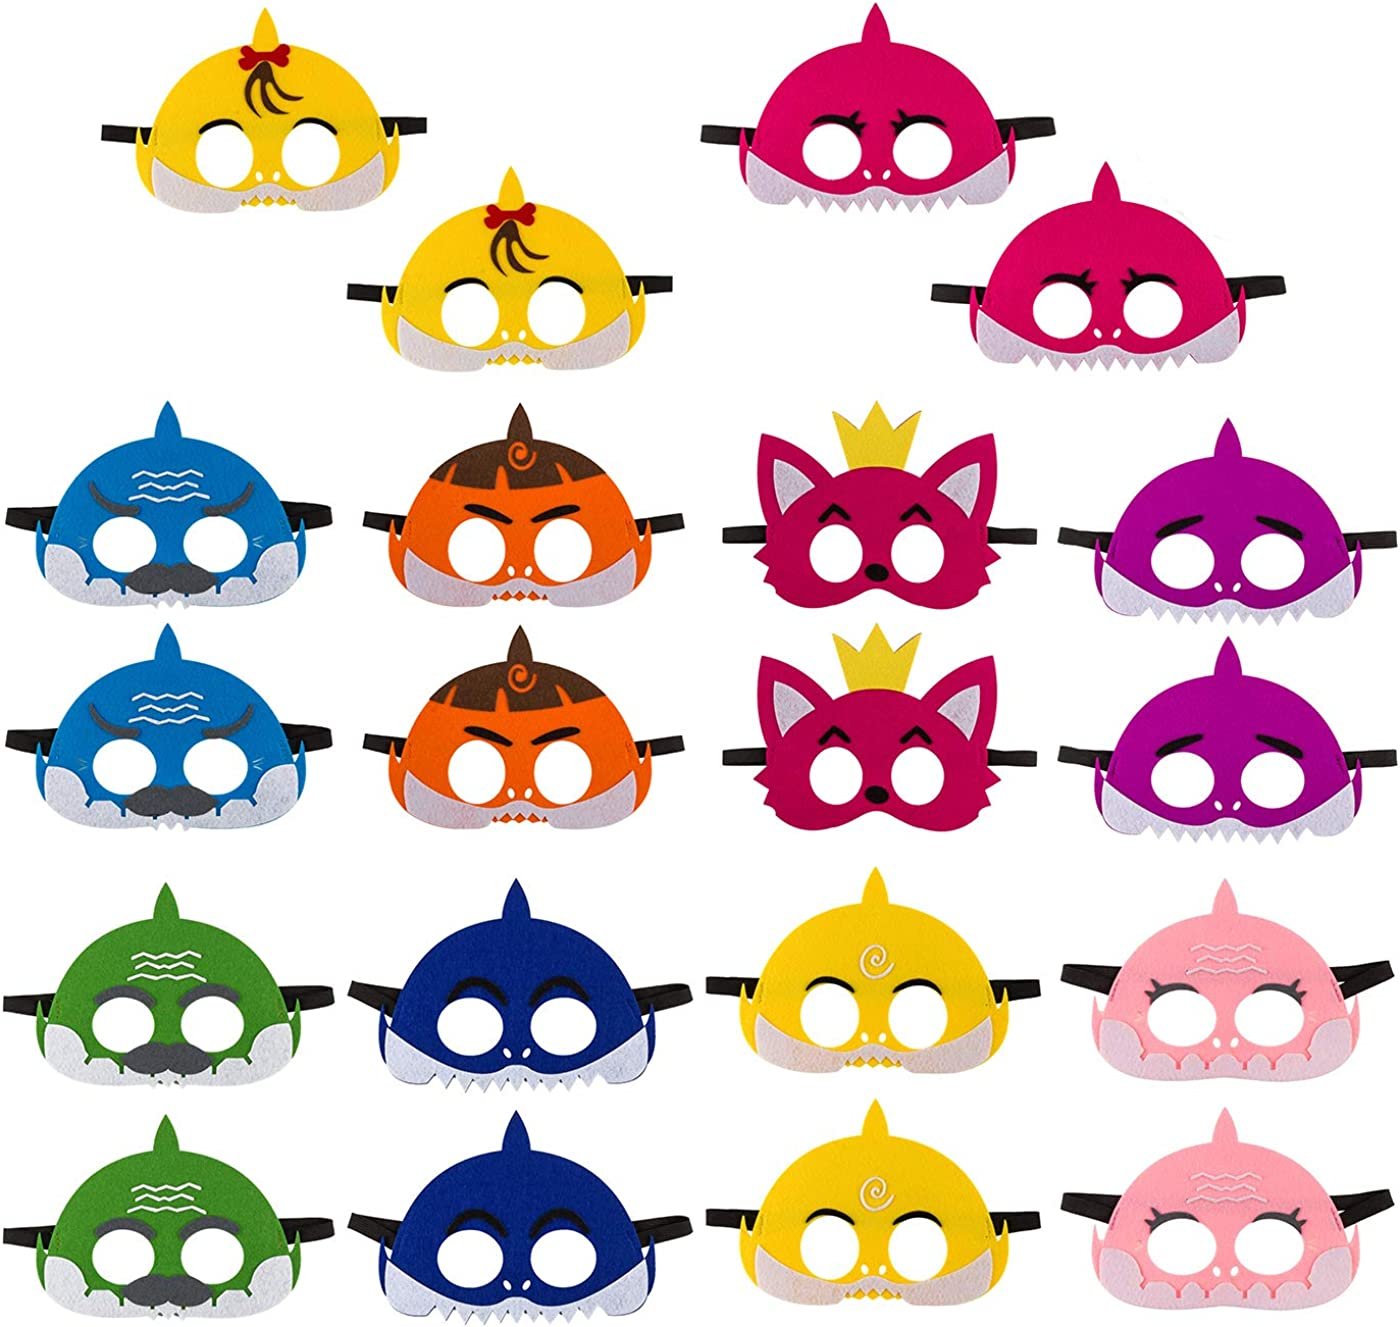 20Pcs Little Shark Felt Mask Children's Birthday Party Family Party Cute Cartoon Soft Graduation Gift Boys Girls Parties Supplies Multicolor